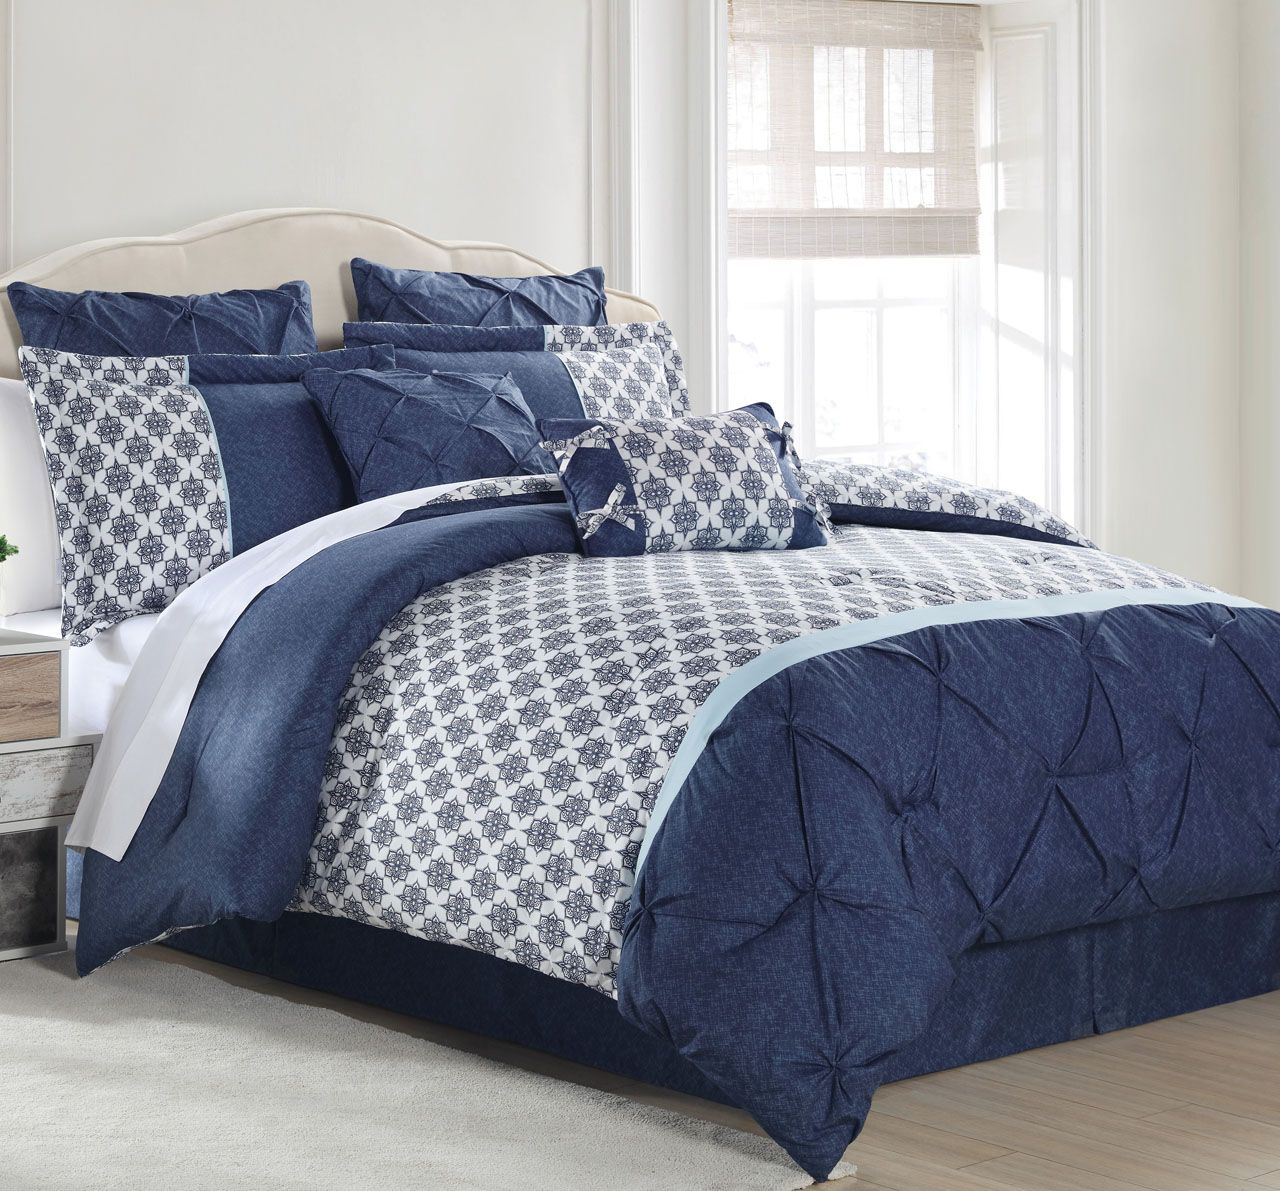 8 Piece Saffron Navy White Comforter Set With Images Comforter